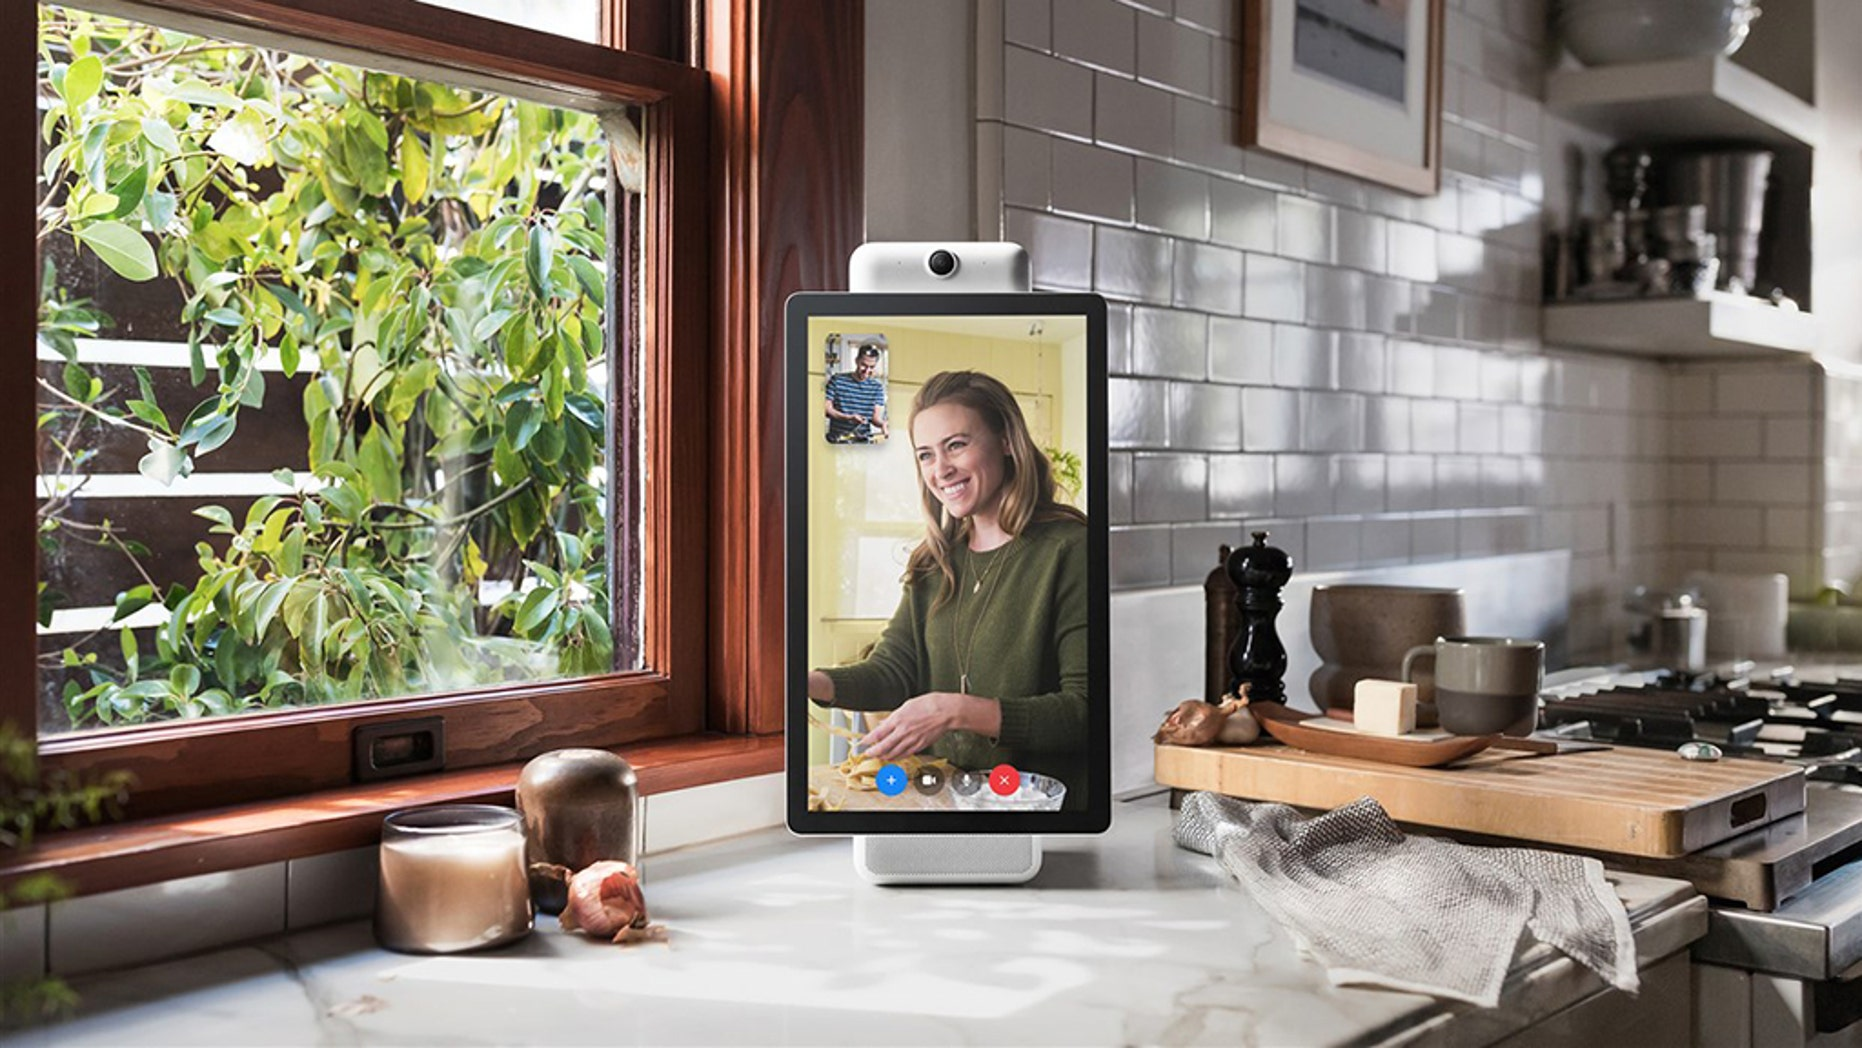 Facebook employees were caught writing glowing reviews of the Facebook Portal on Amazon. (Facebook)